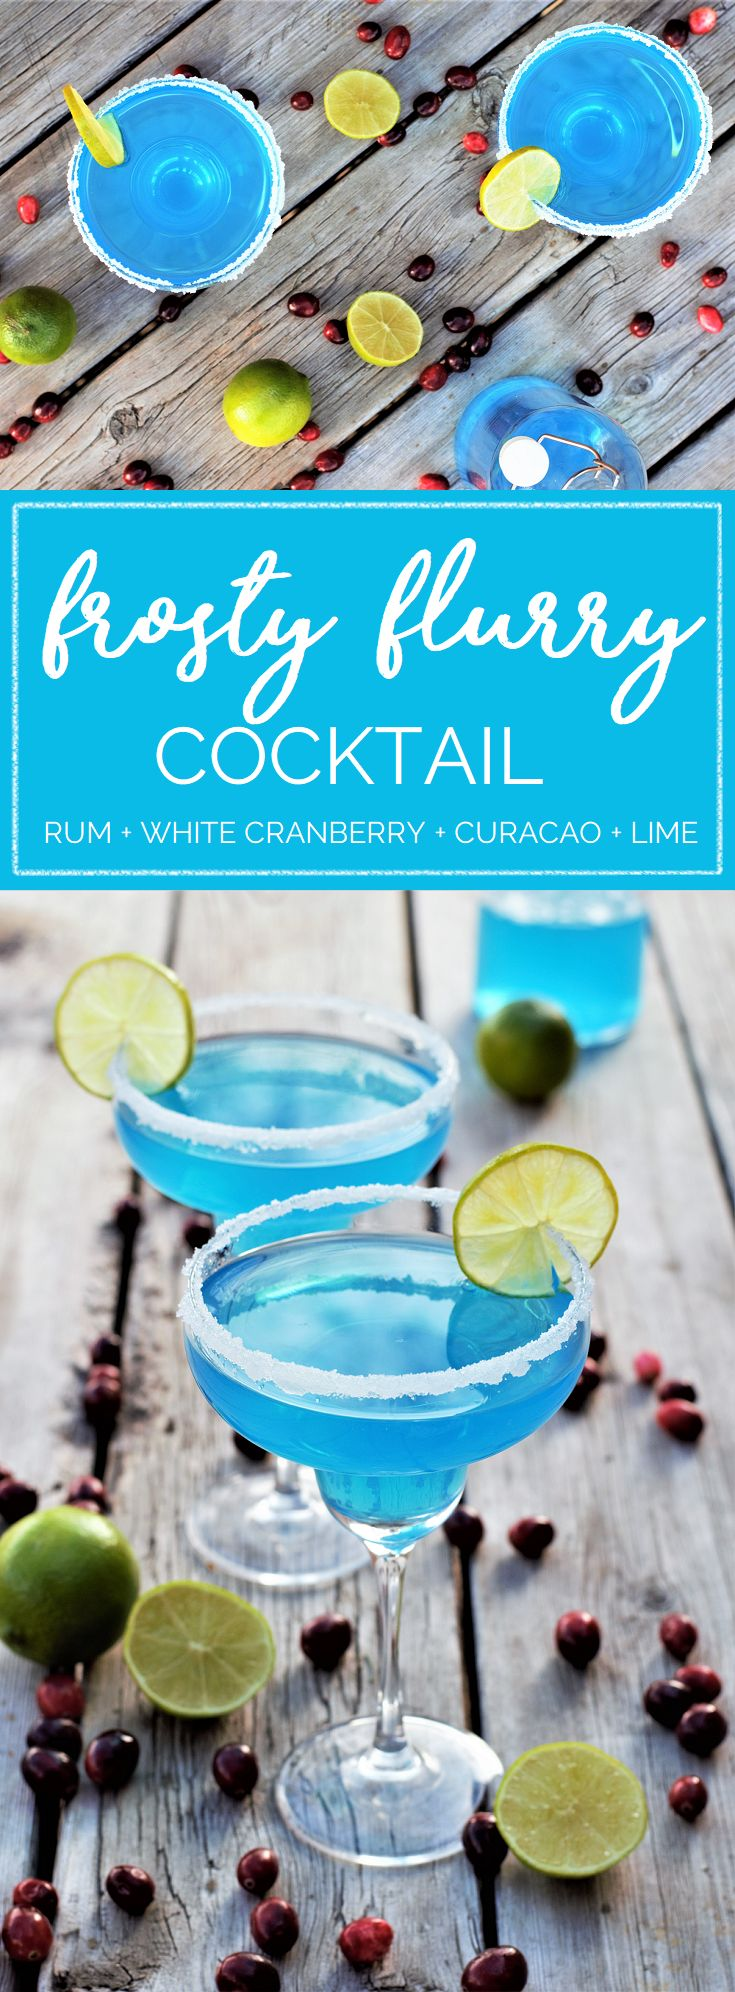 Gorgeous icy blue cocktails with rum, white cranberry, curacao, & lime rimmed with sparkling snowflake sugar to bring on the snow for a blue blue Christmas!